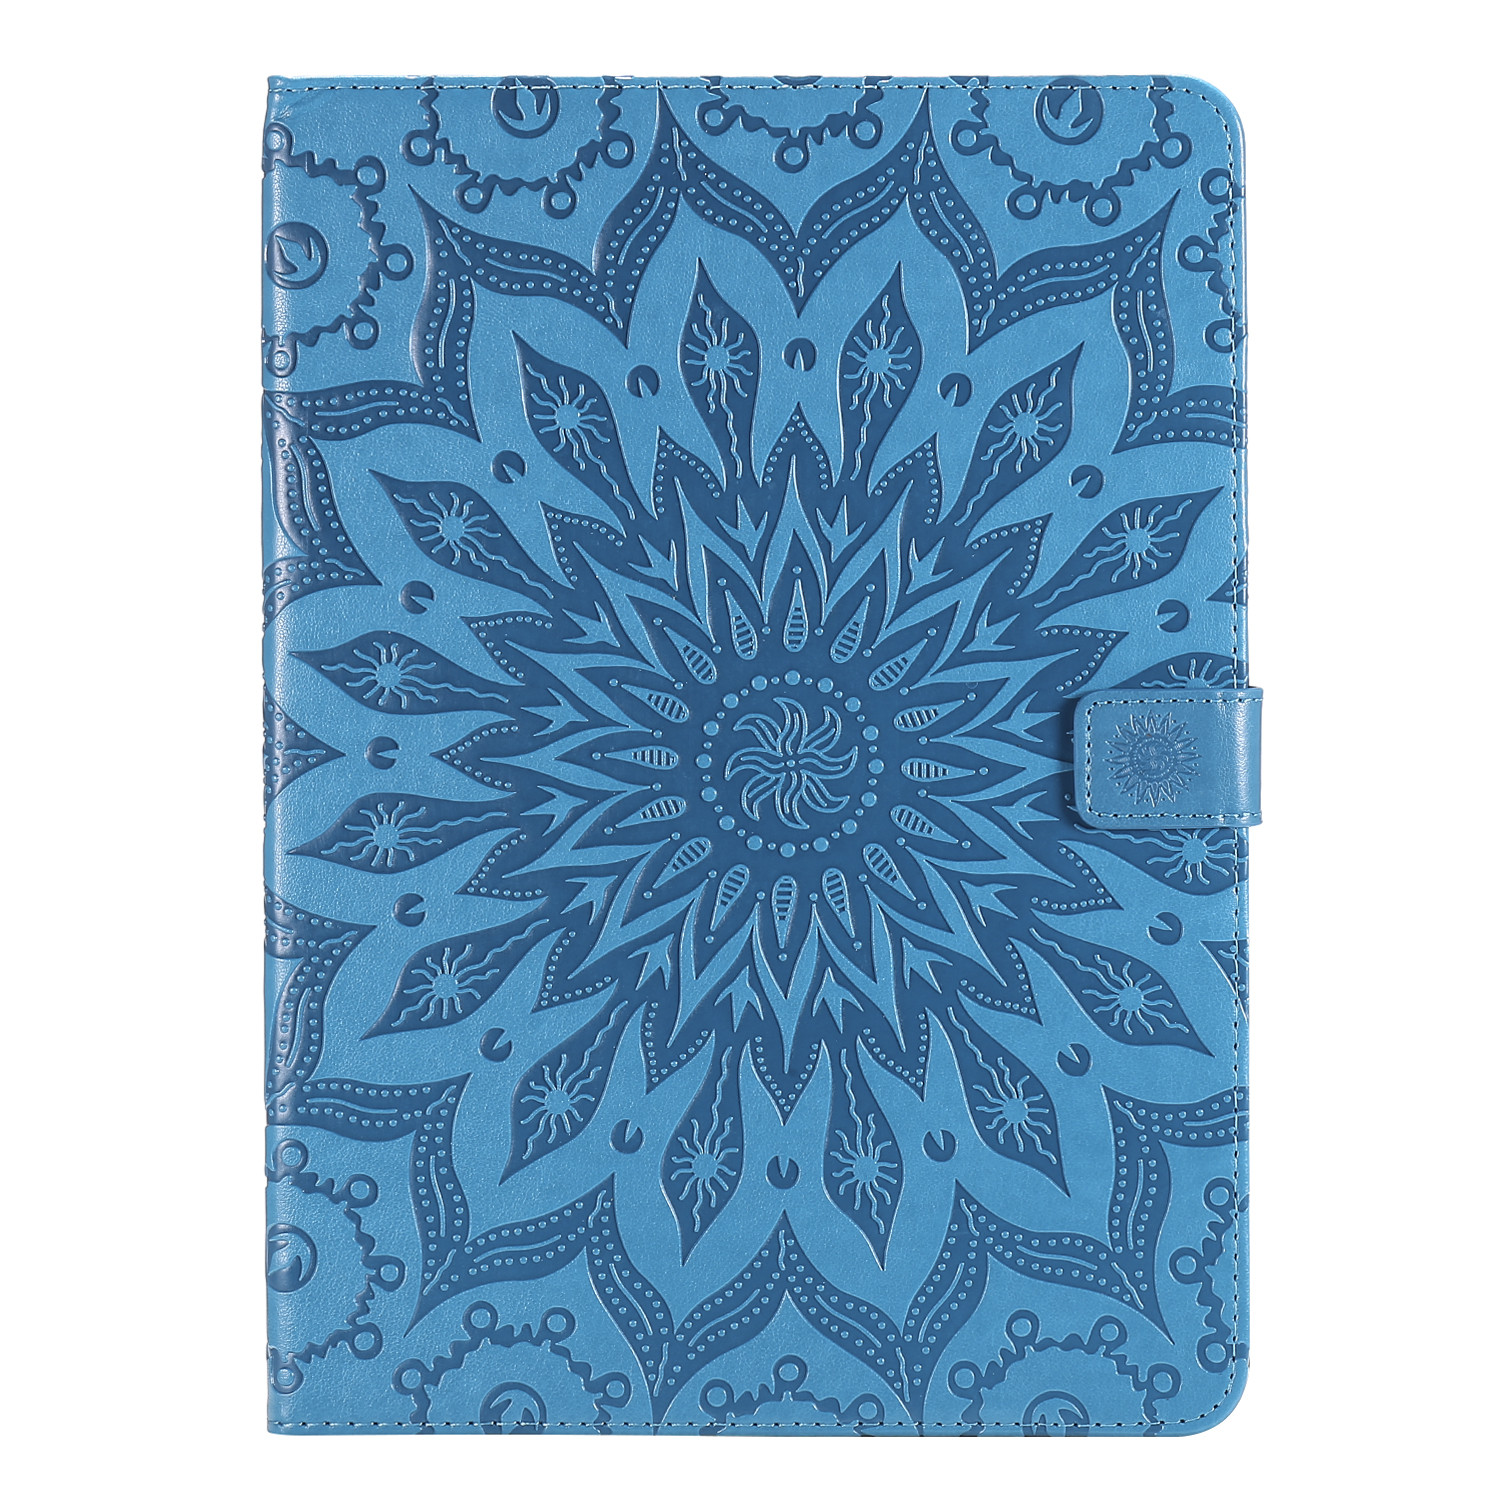 6 Purple Flower 3D Embossed Cover for iPad Pro 12 9 Case 2020 Leather Protective Shell Skin for